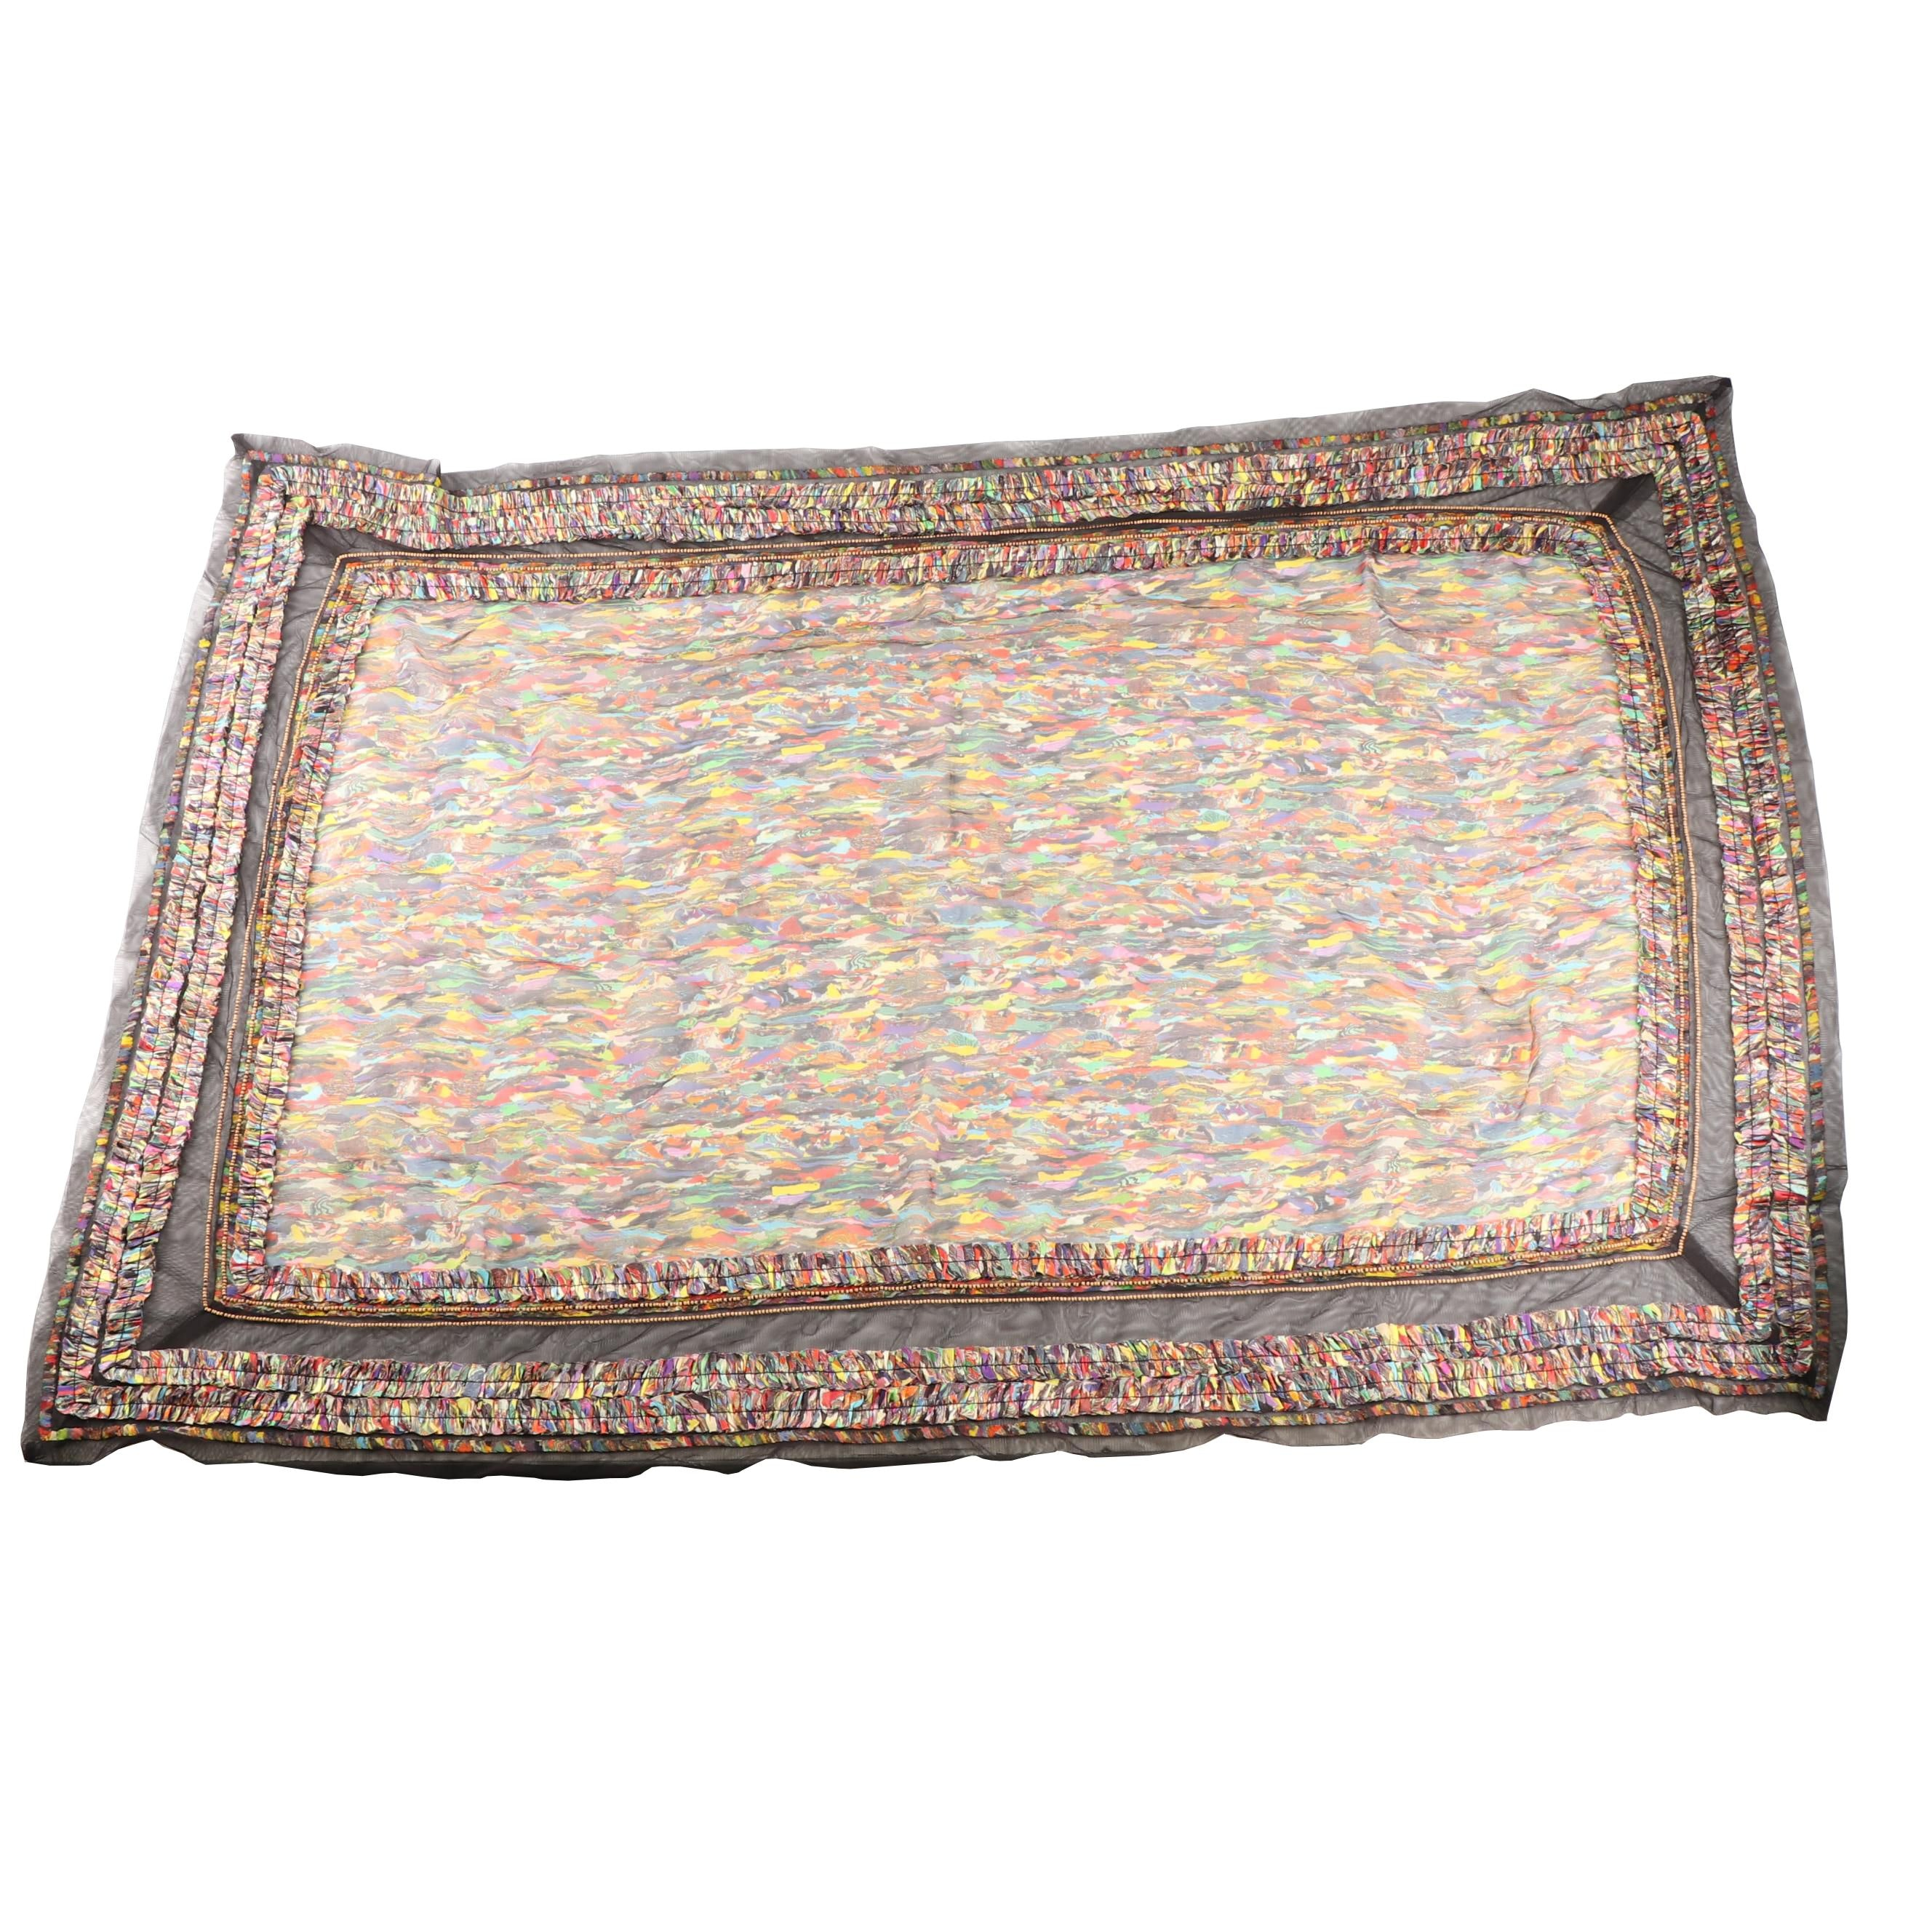 Dries Van Noten Multicolored Silk Blend Scarf with Tulle and Bead Embellishments